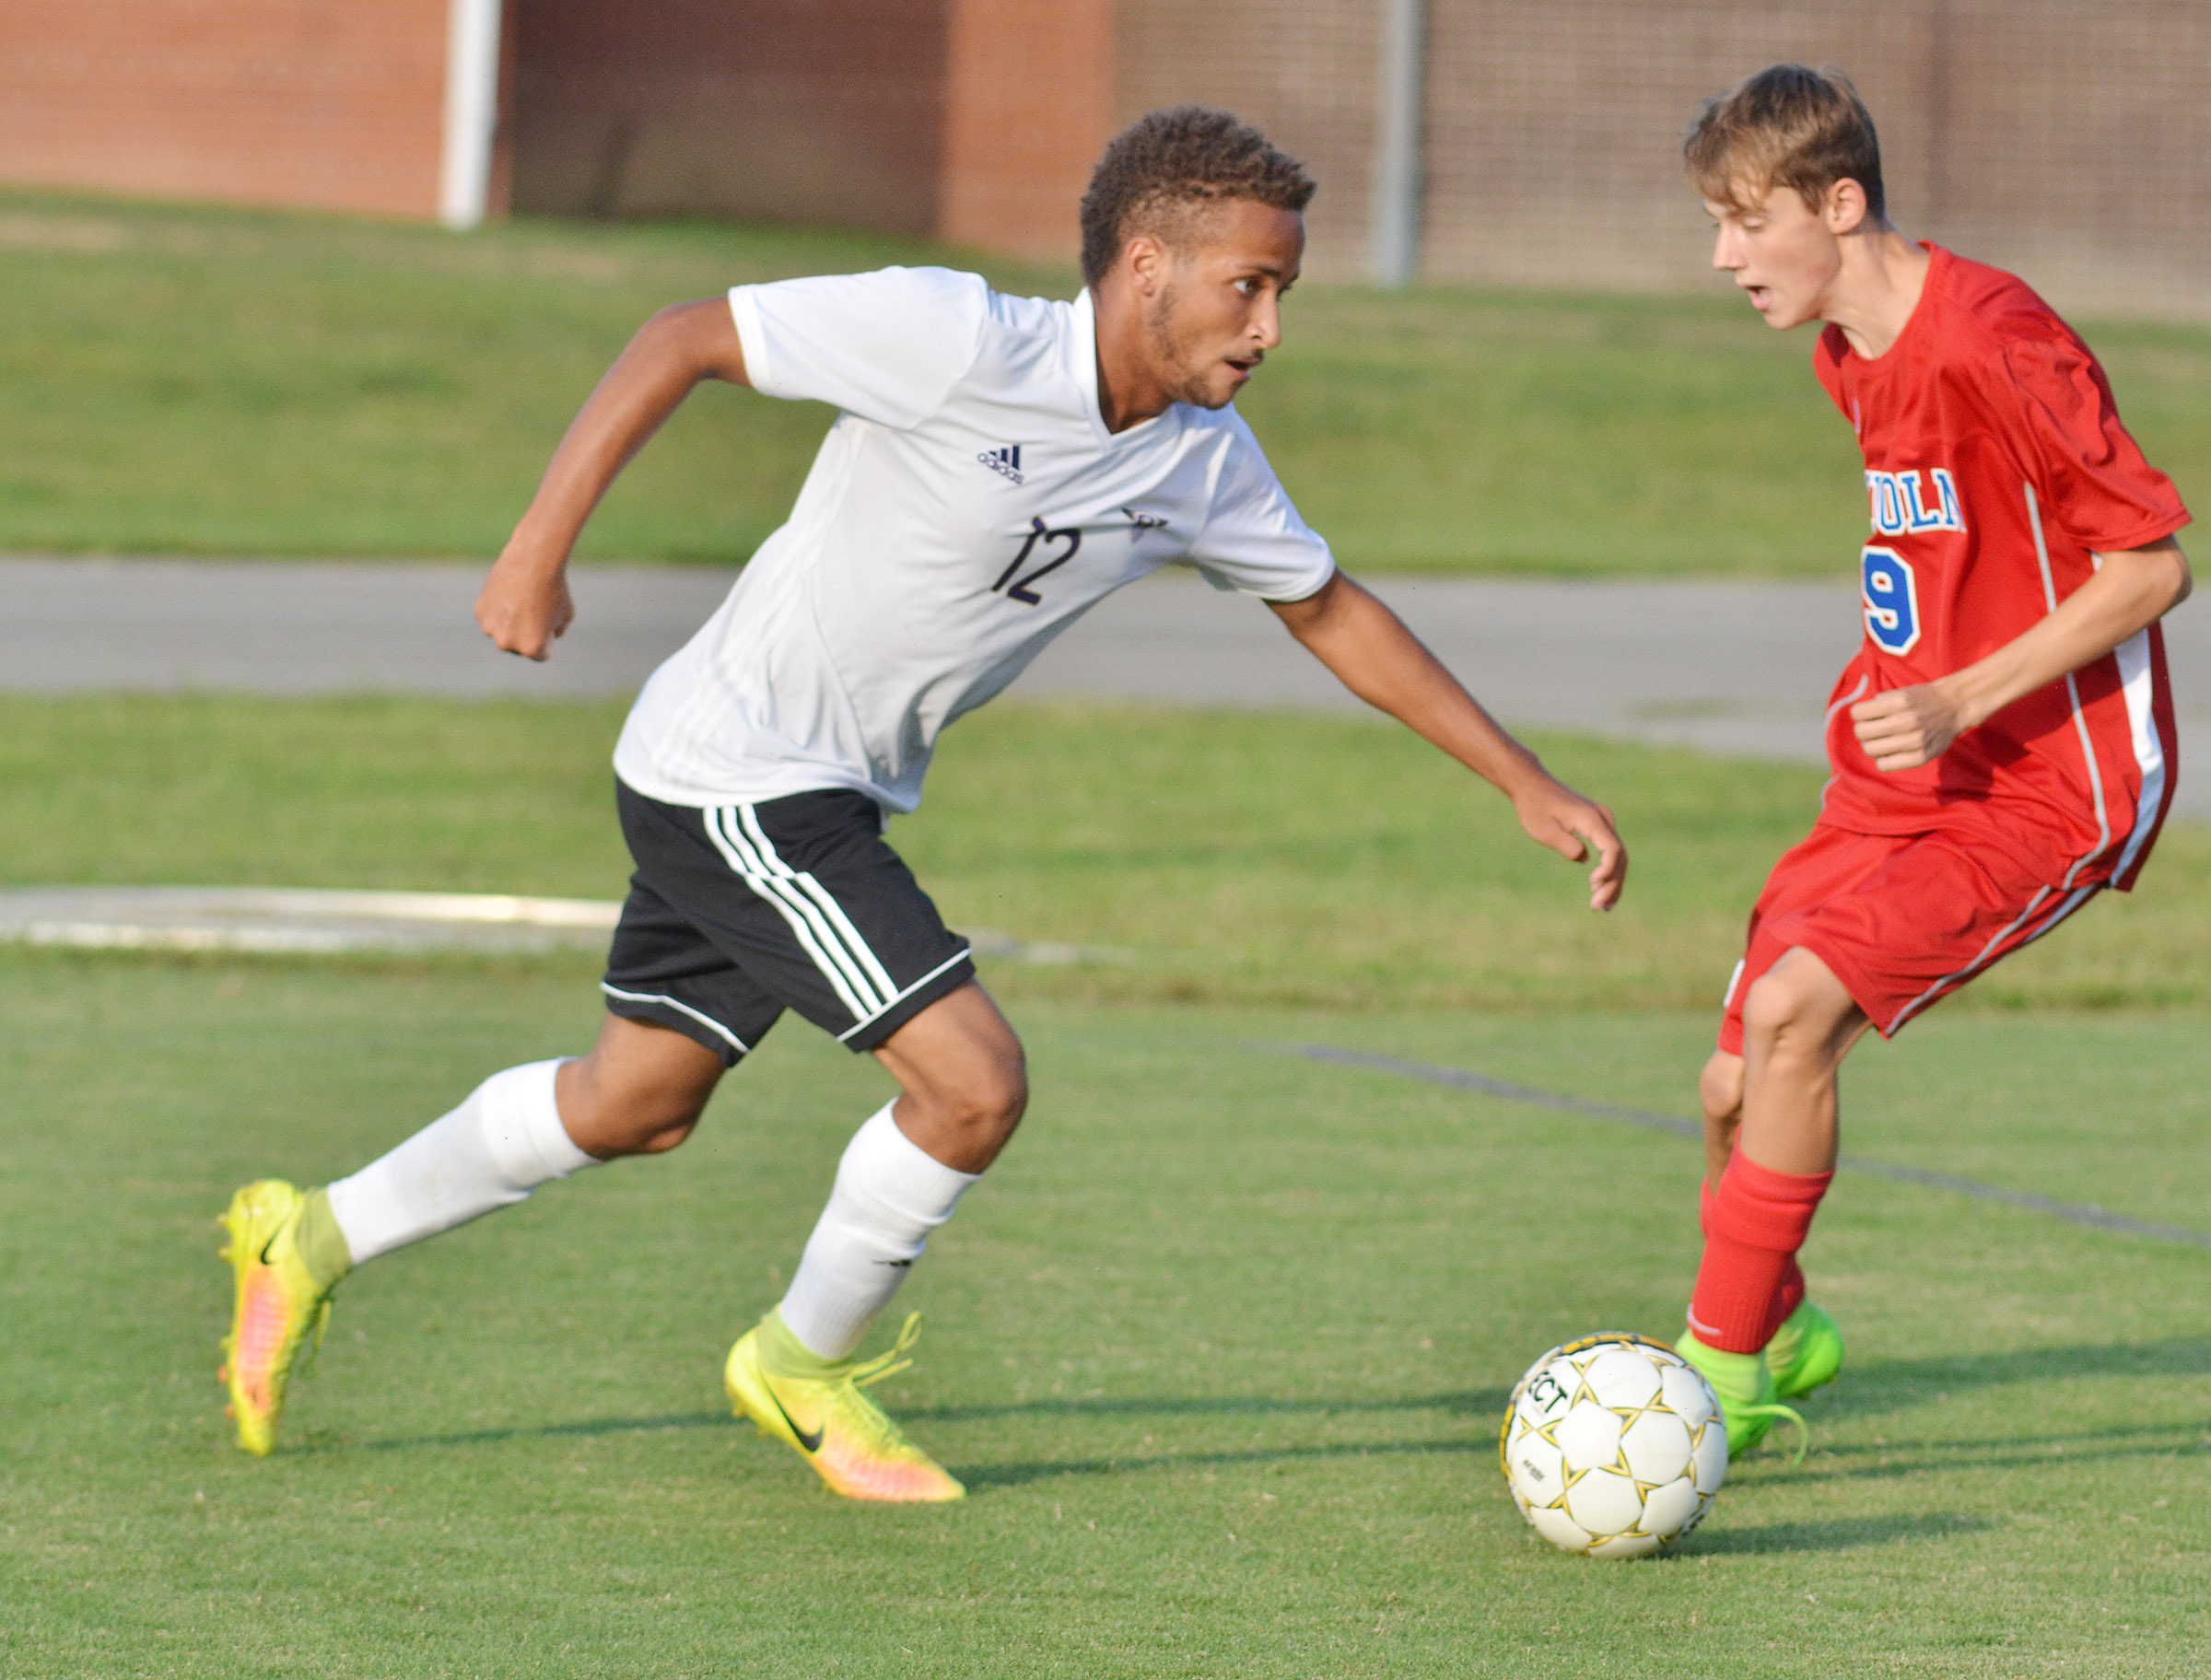 CHS senior Ethan Lay runs to the goal.